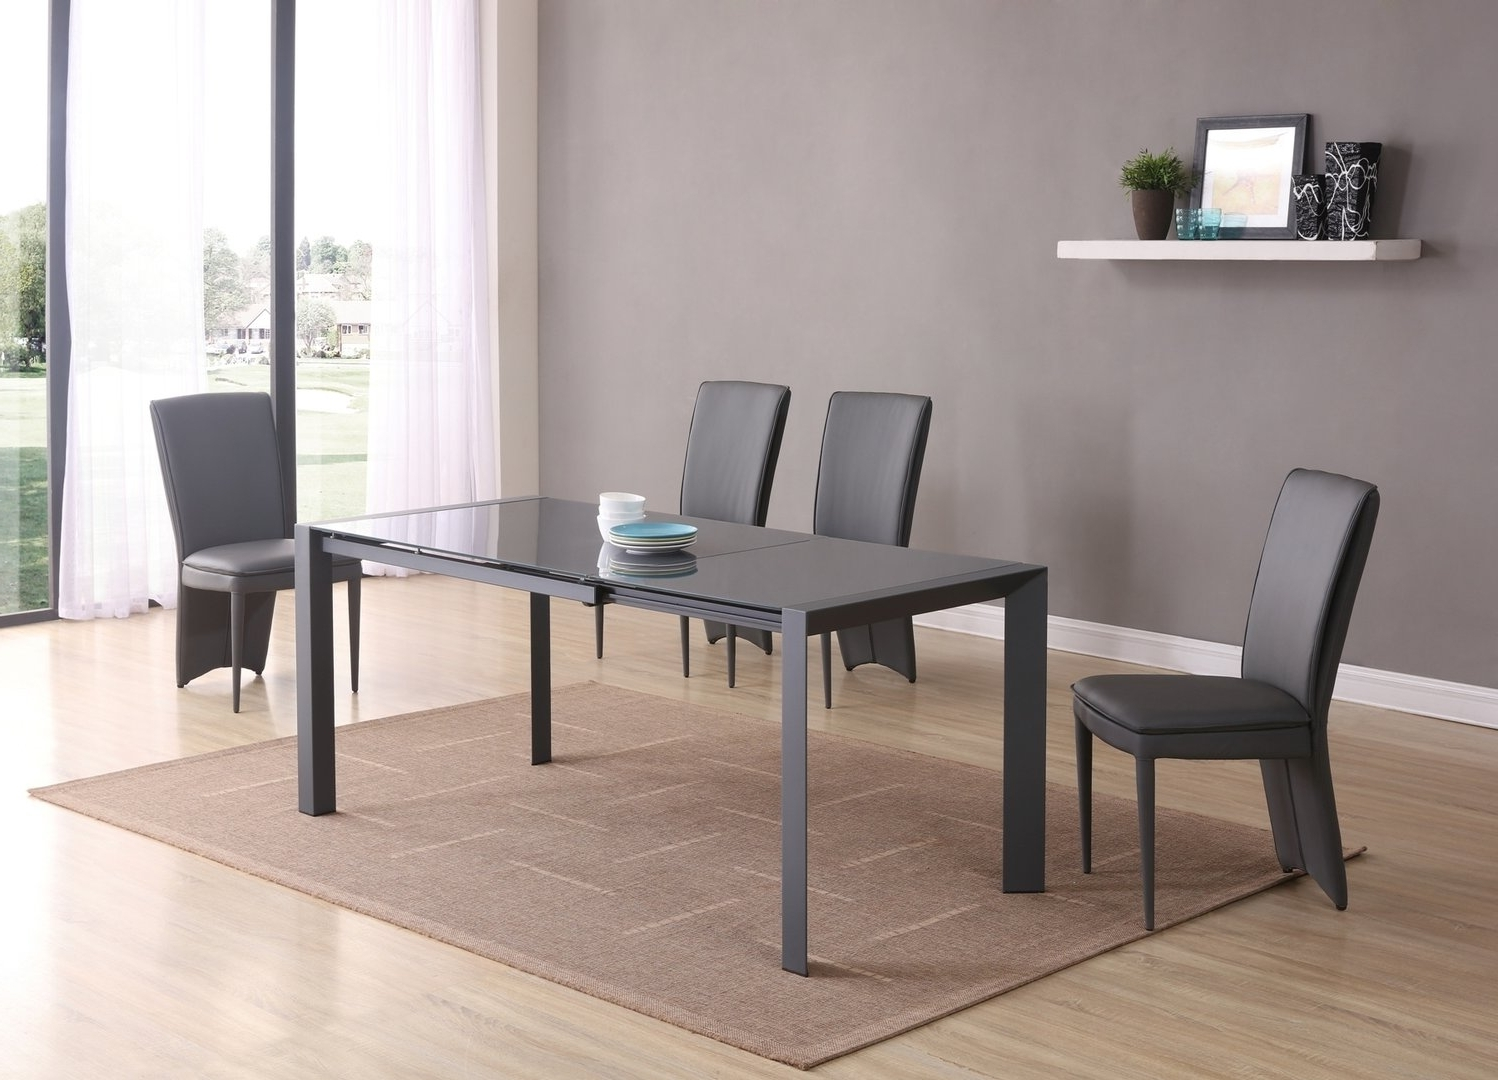 Grey Dining Tables with Well-liked Extending Matt Grey Glass Dining Table And 6 Chairs - Homegenies